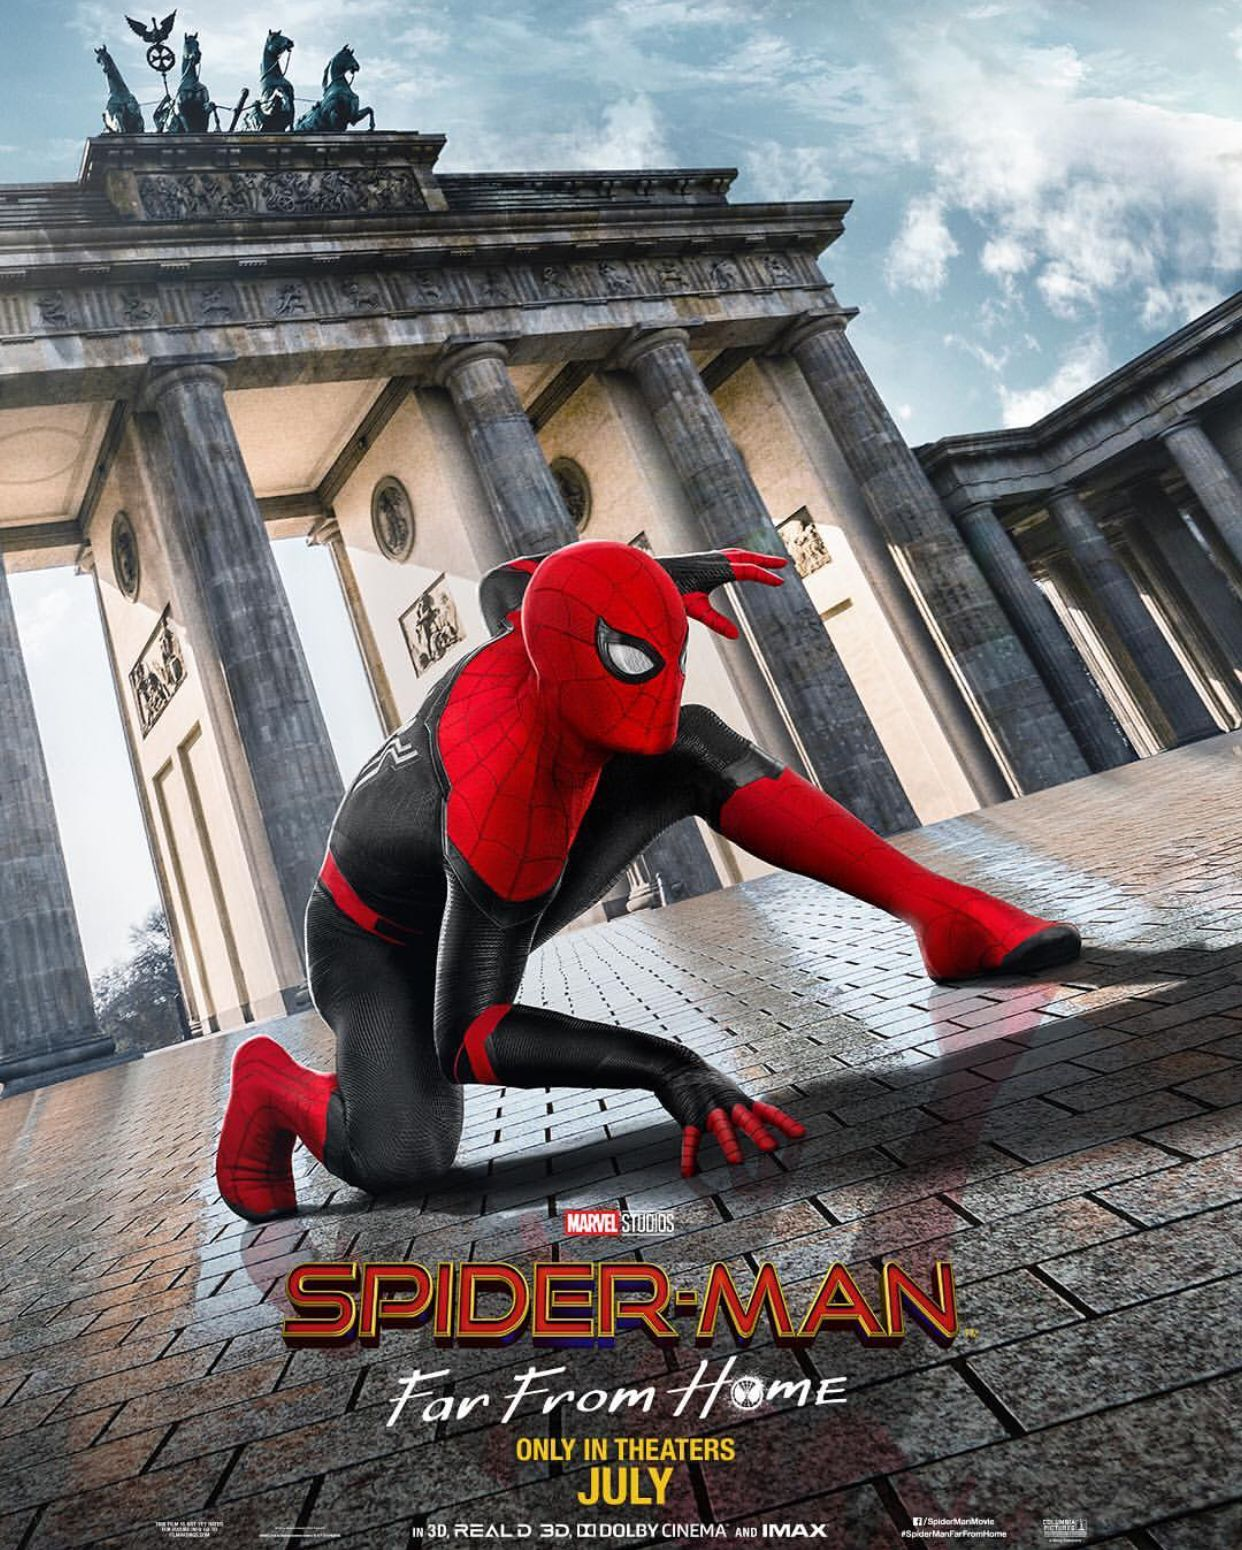 Pin By Arenukares On Movie Posters Spiderman Marvel Spiderman Art